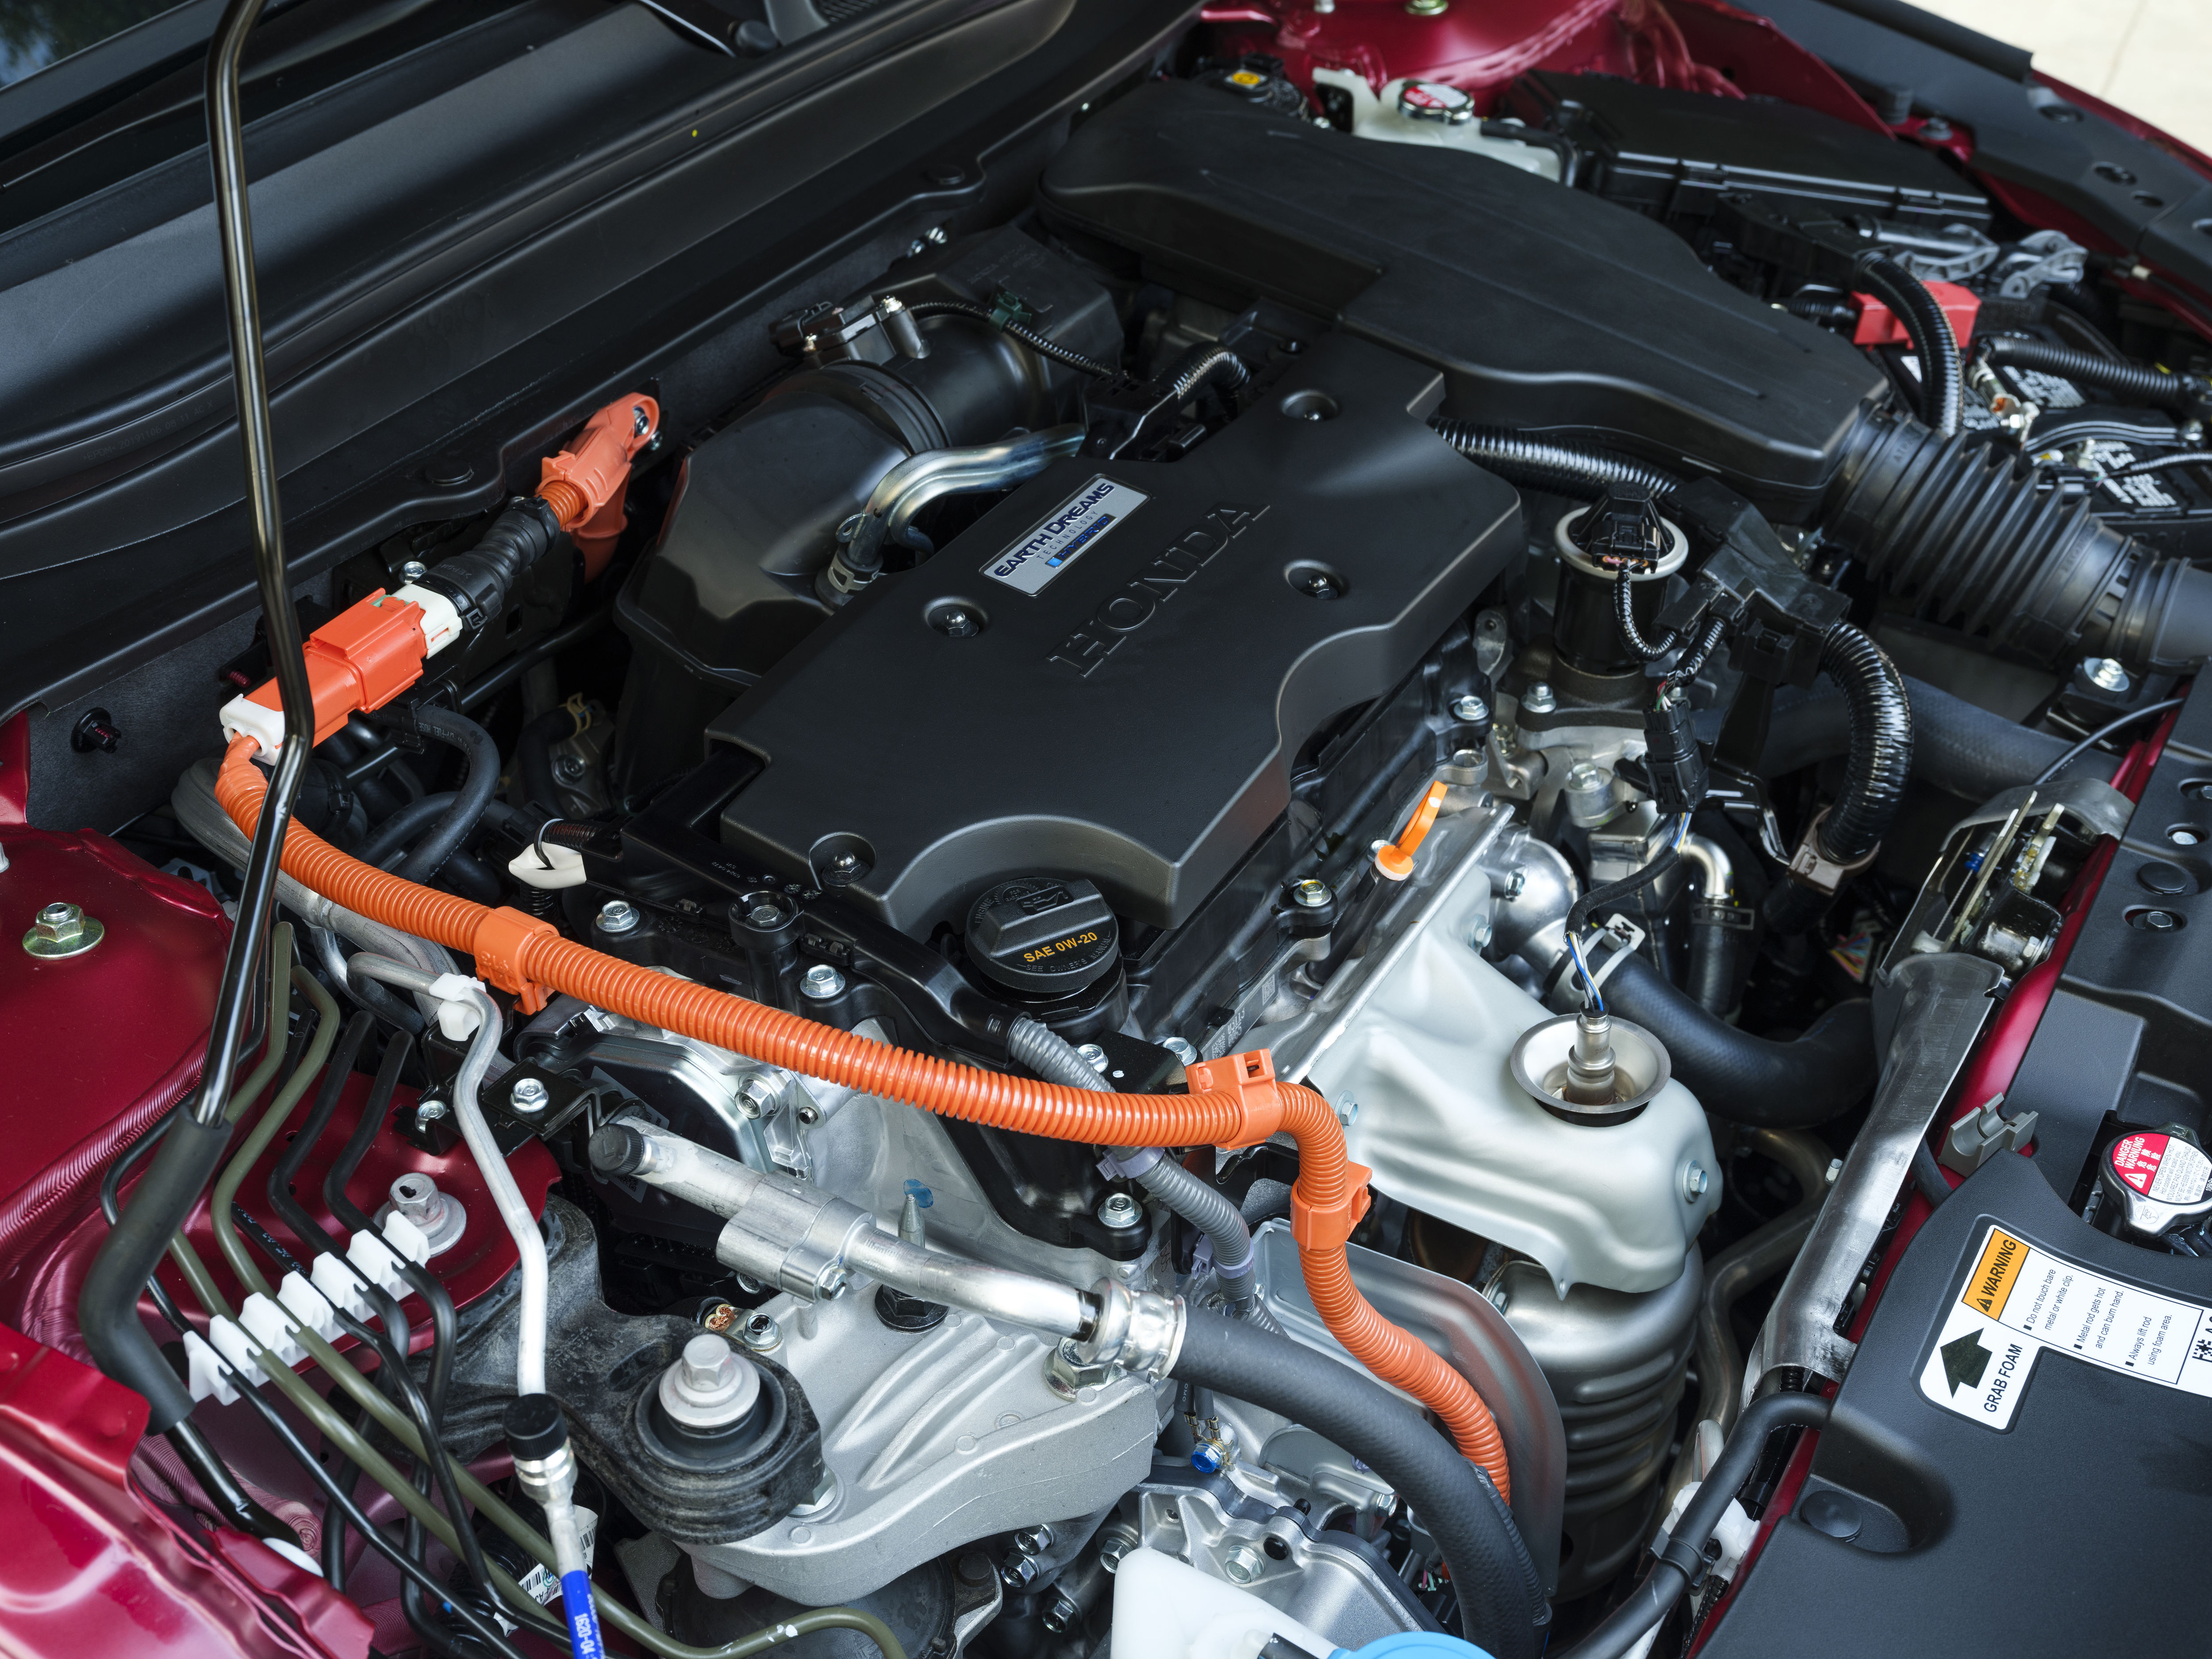 Under the hood, there are three engine options to be made available - 1.5-liter turbocharged 4-cylinder unit, 2.0-liter, DOHC, i-VTEC motor and a 2.0-liter turbocharged 4-cylinder with 10-speed auto transmission box.